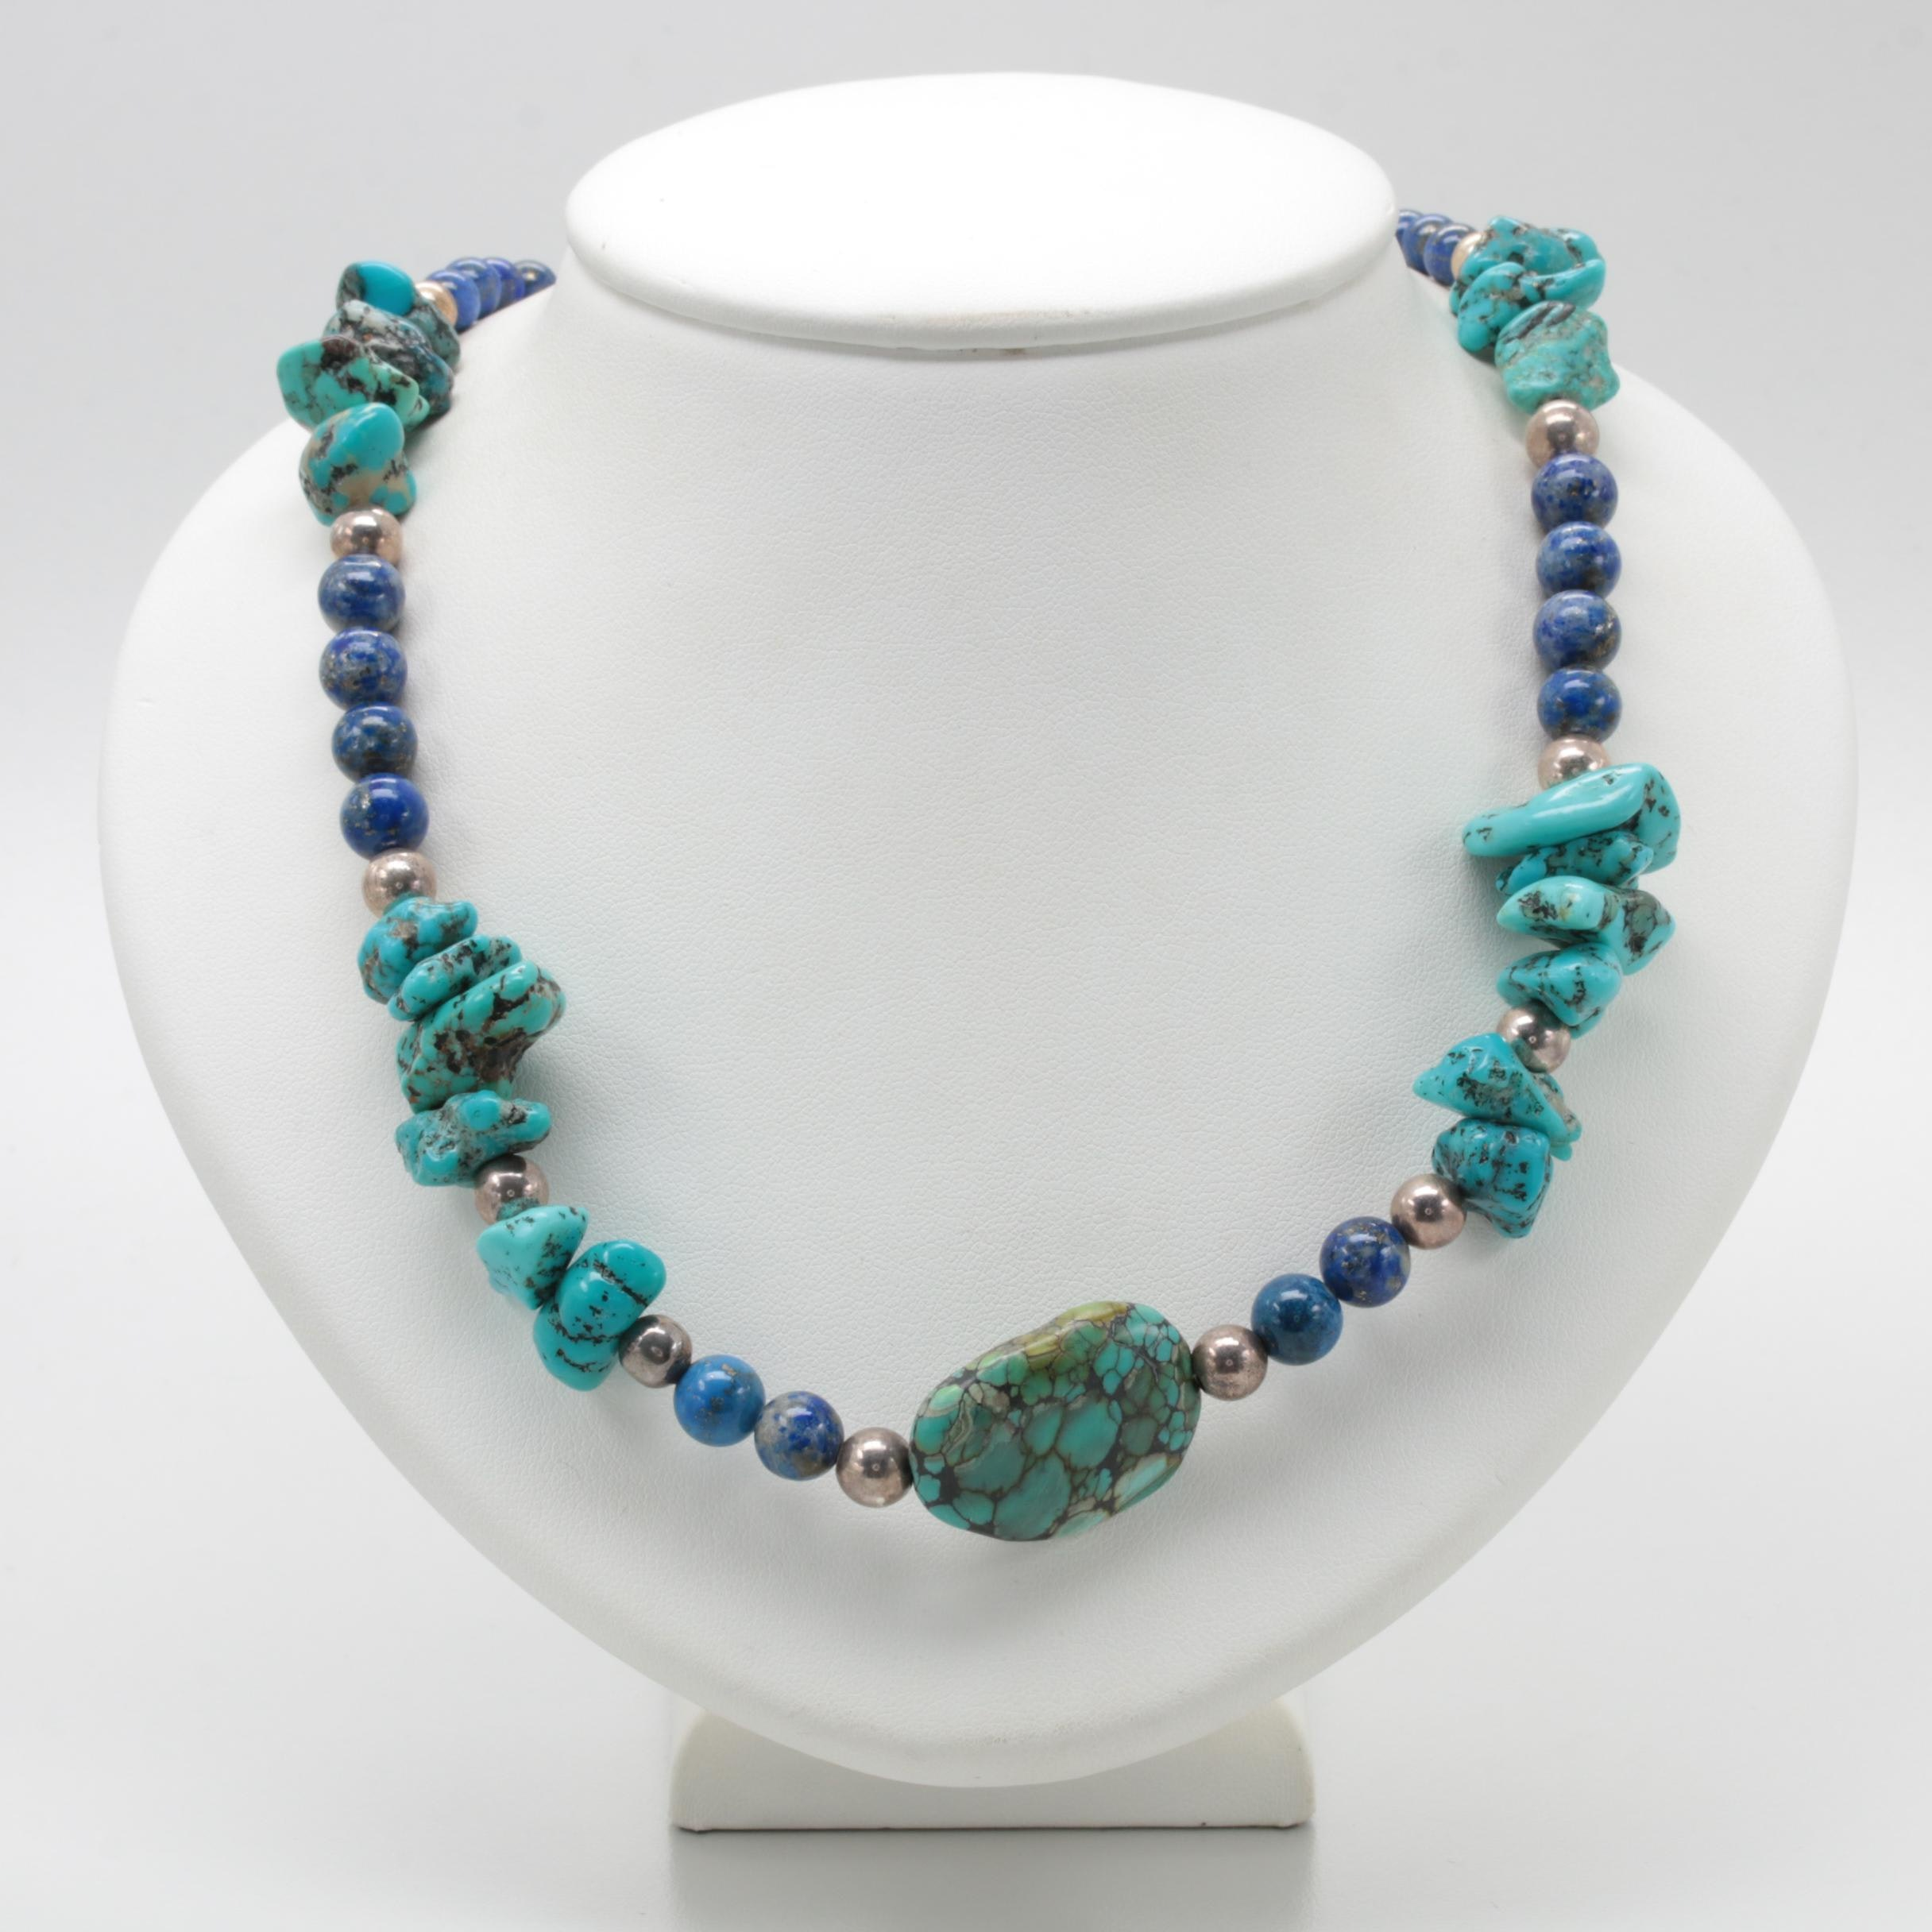 Southwestern Style Sterling Silver Turquoise and Lapis Lazuli Beaded Necklace